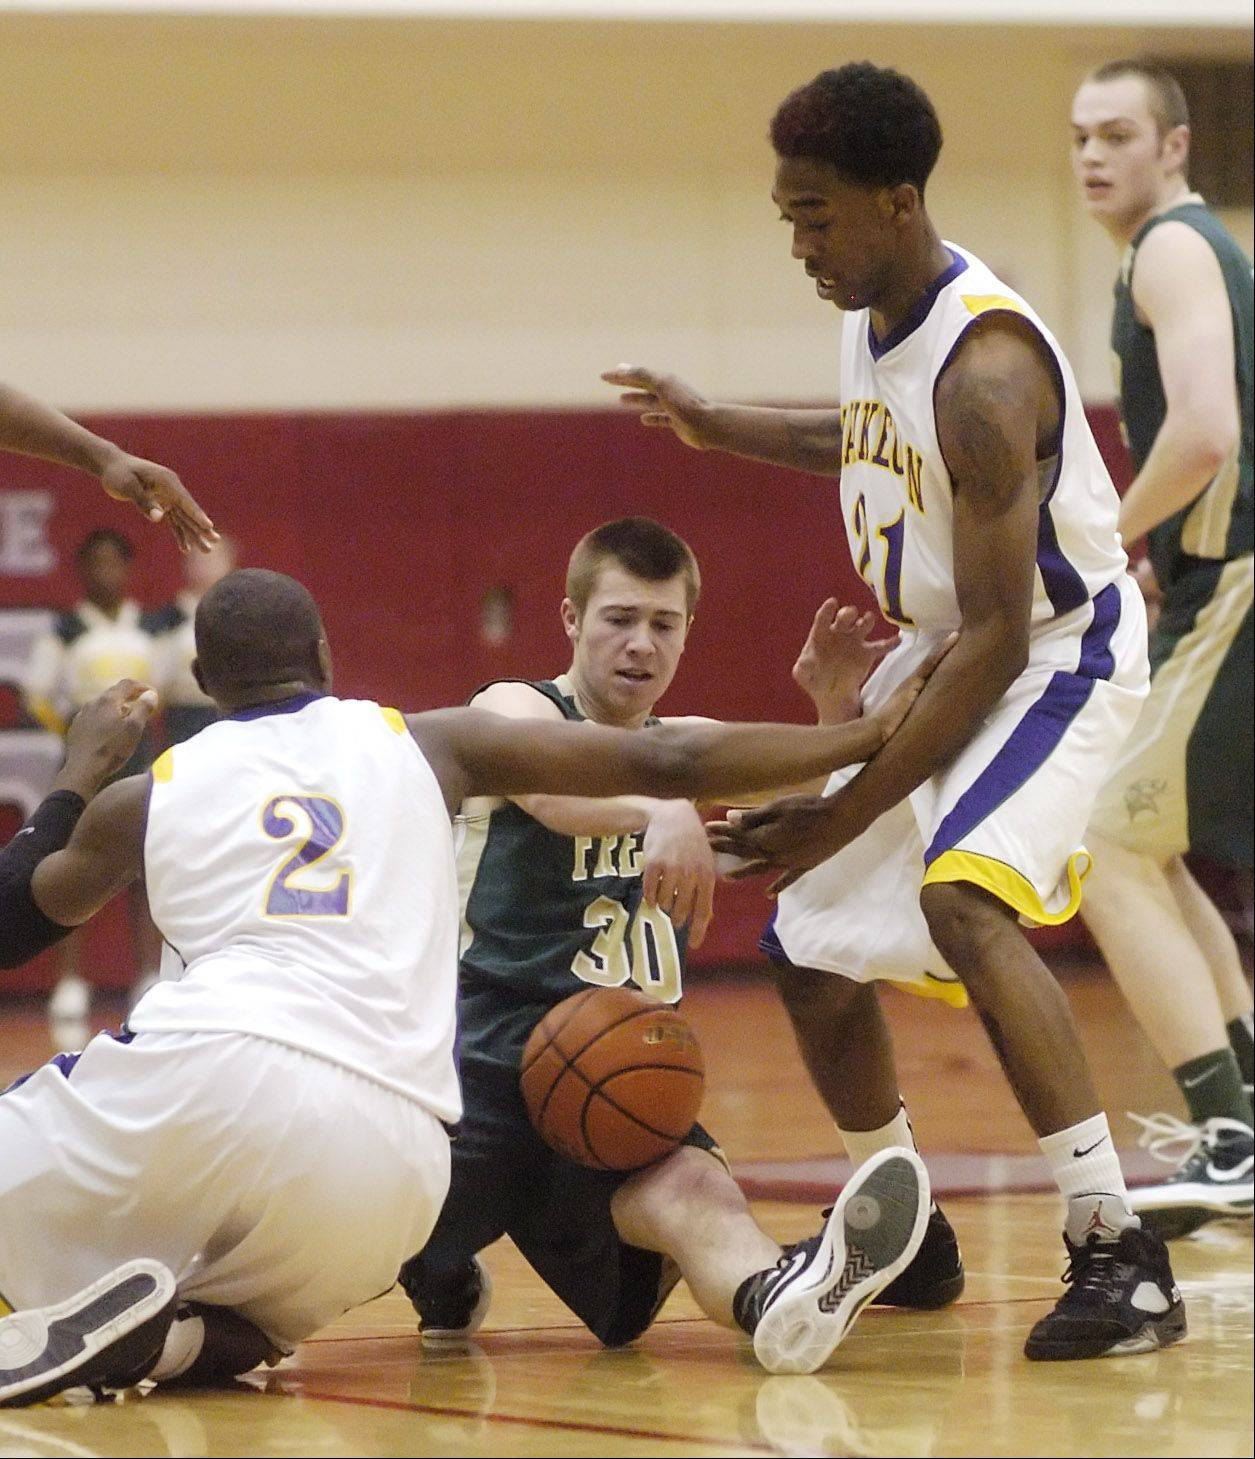 Waukegan defenders Akeem Springs, left, and DeVonte Taylor, right, try to force a turnover on Fremd's Matt Wisniewski.